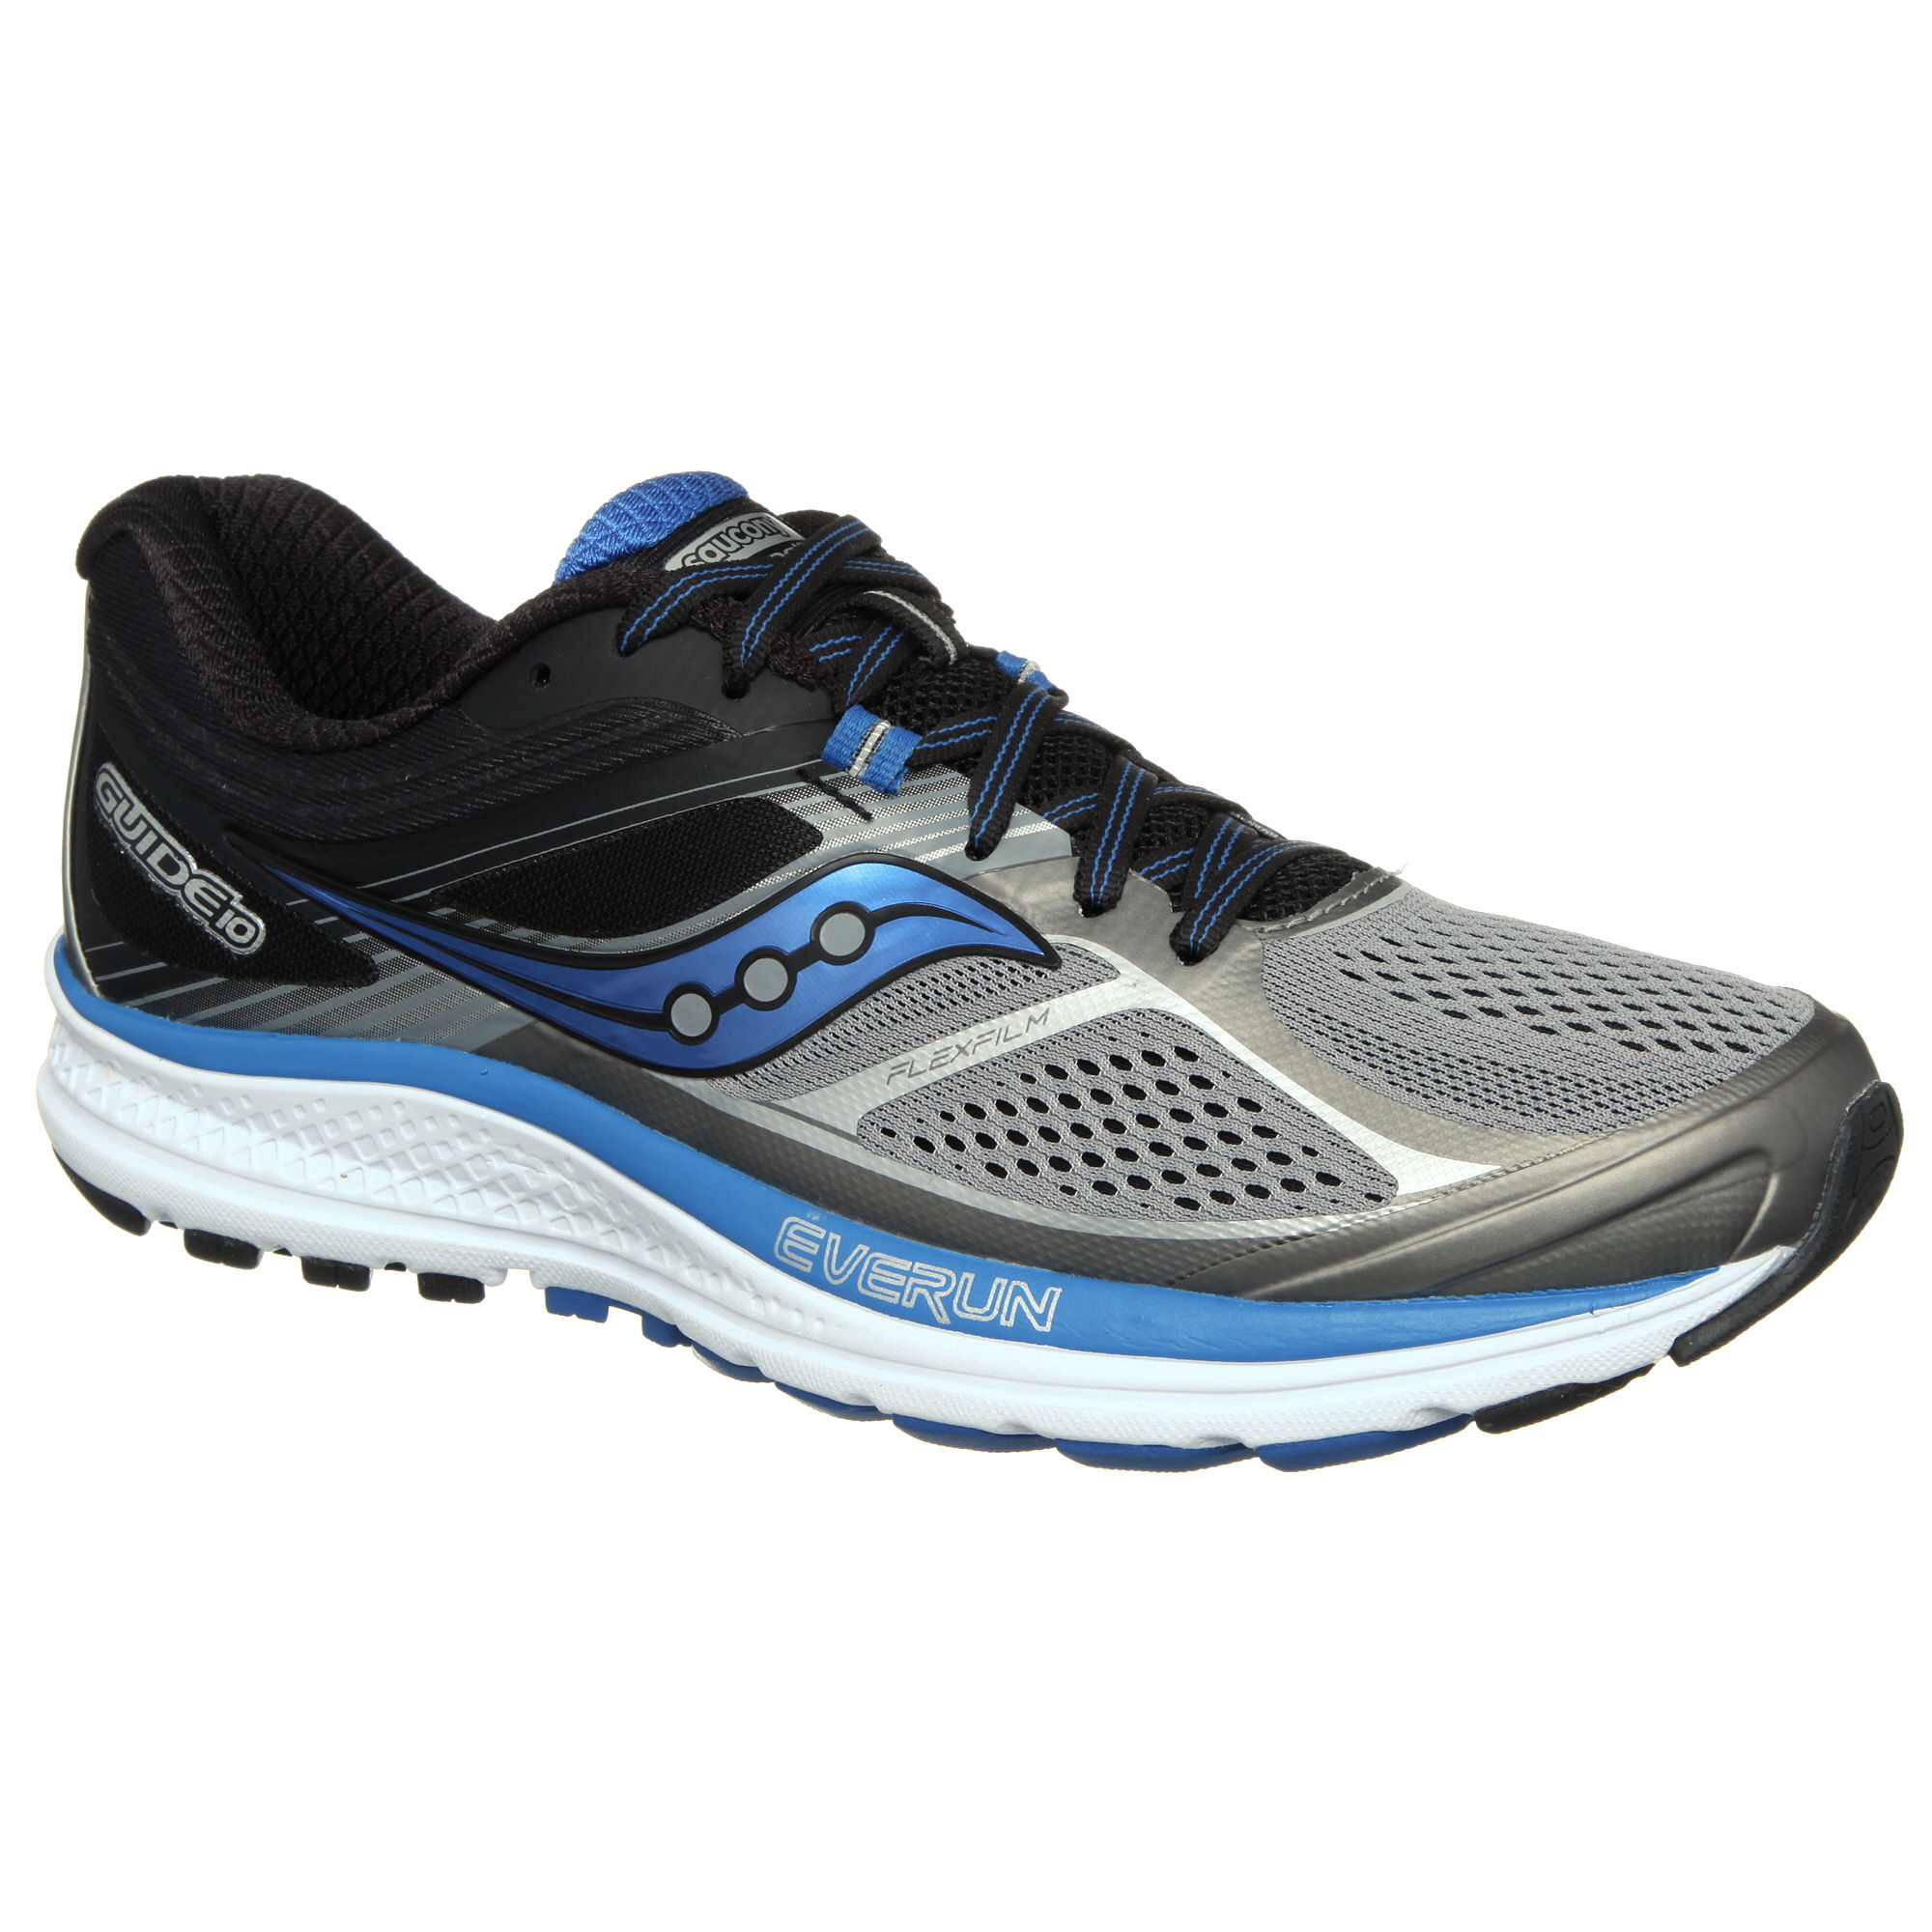 Saucony Top Rated Running Shoes